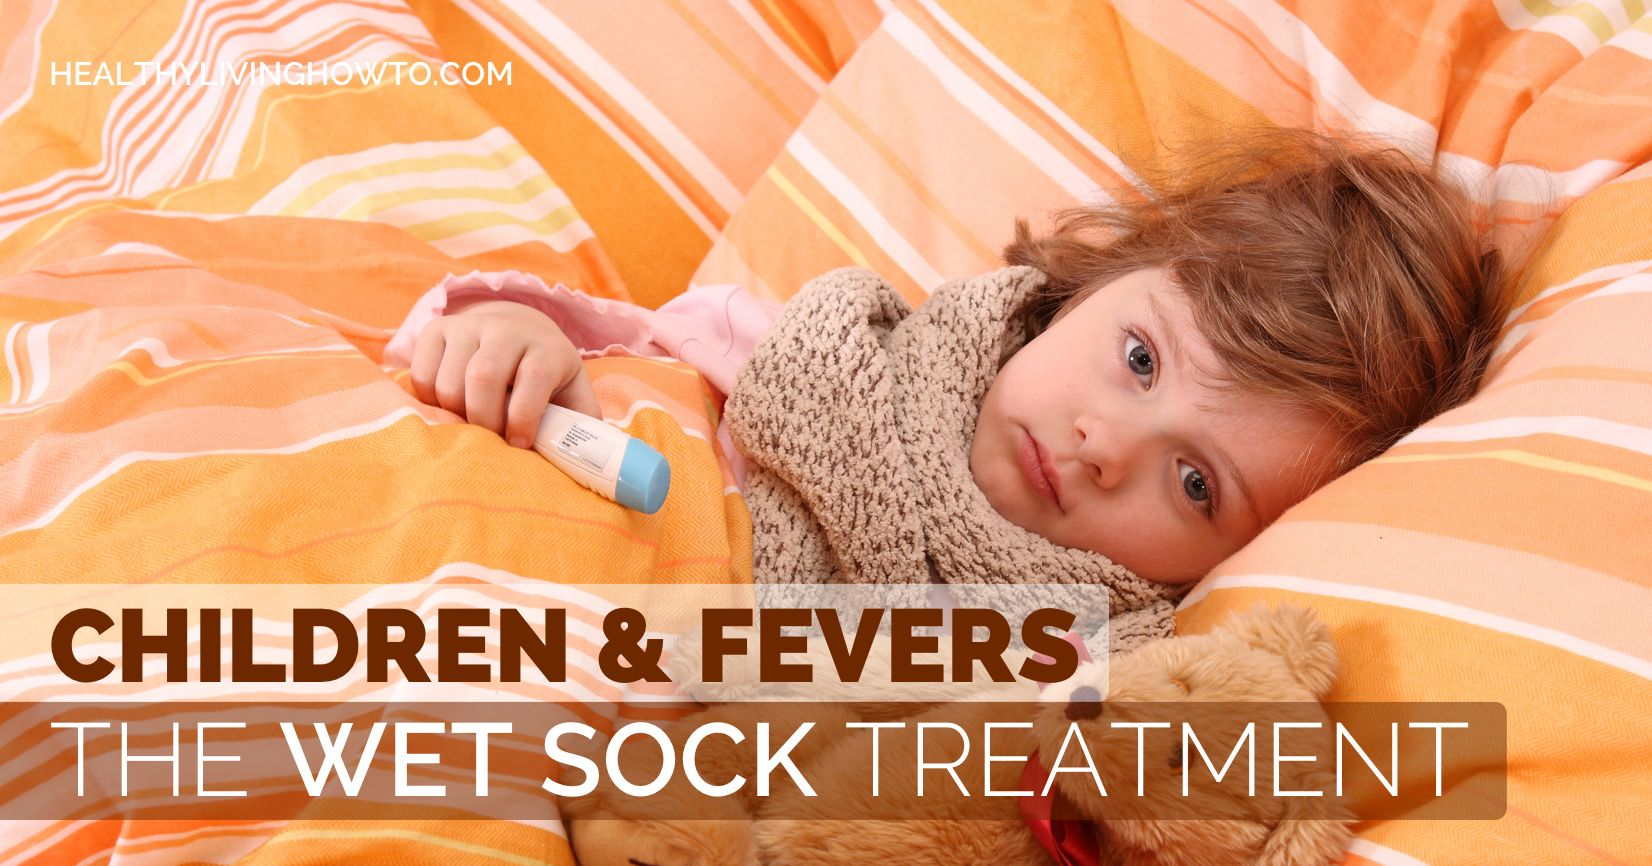 Children & Fevers. The Wet Sock Treatment | healthylivinghowto.com